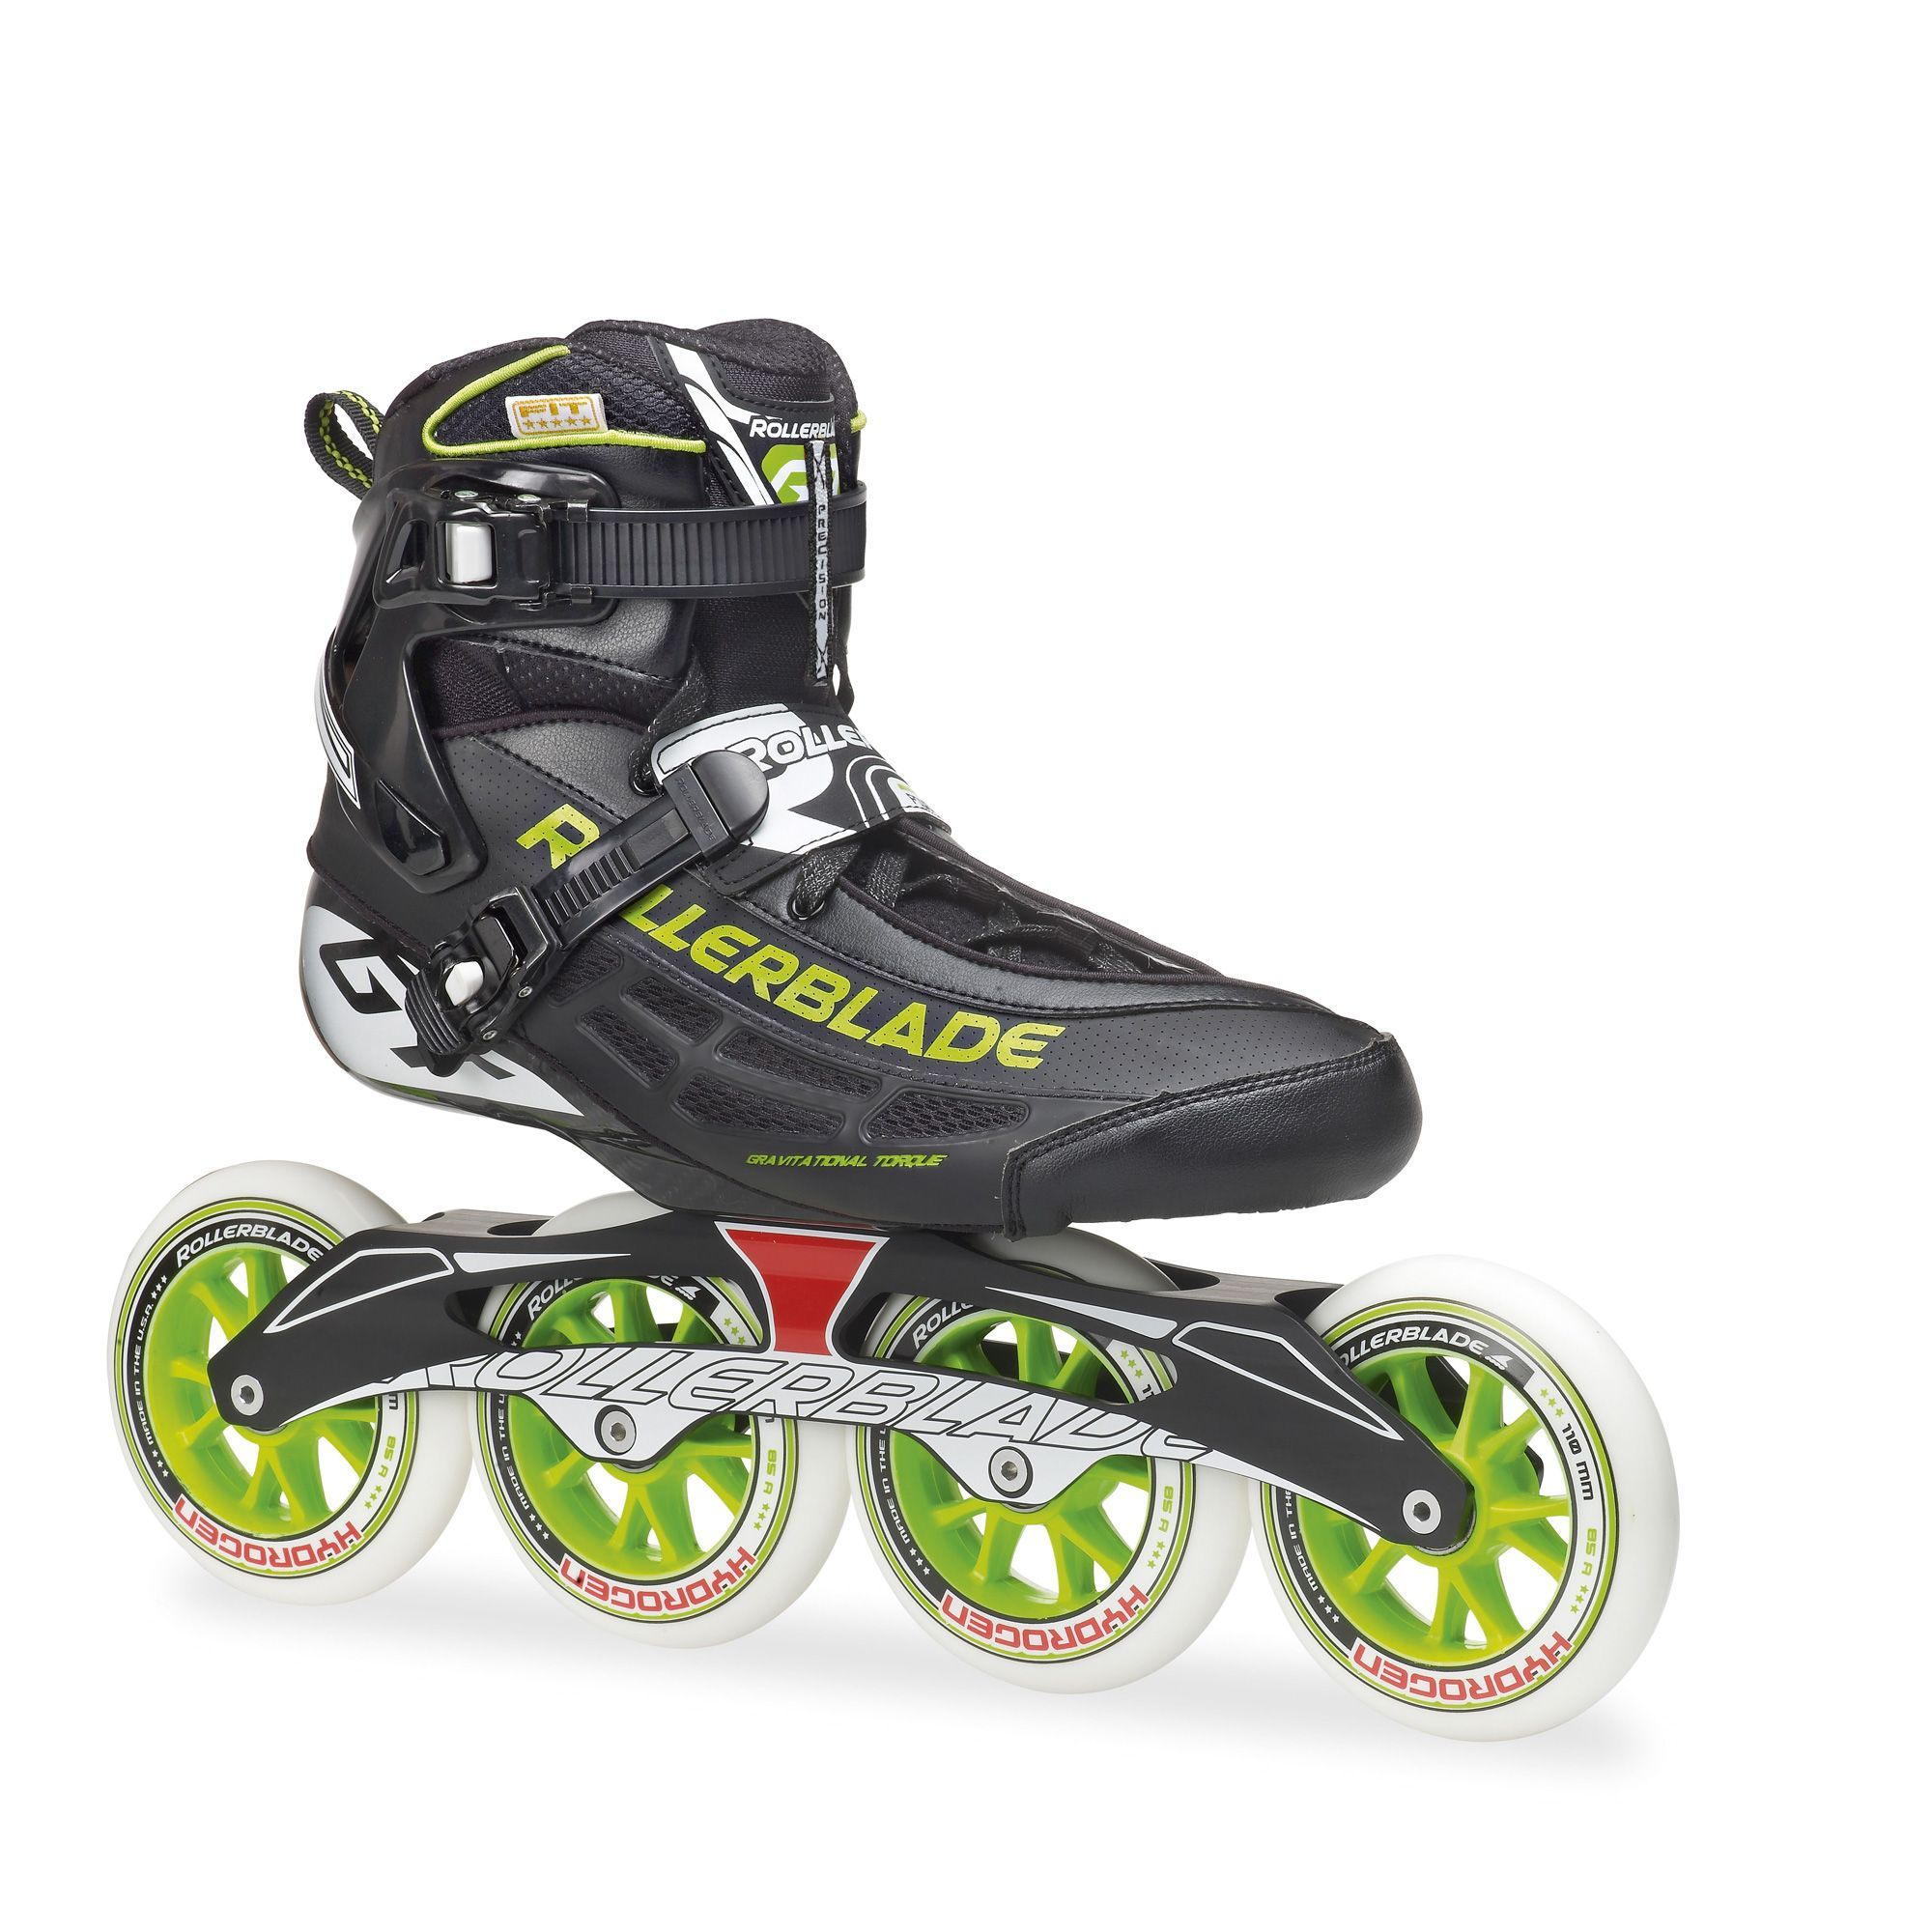 Pacer Voyager 6000 Inline Skates in Black Men/'s 5 or 6 Used Once w// Box